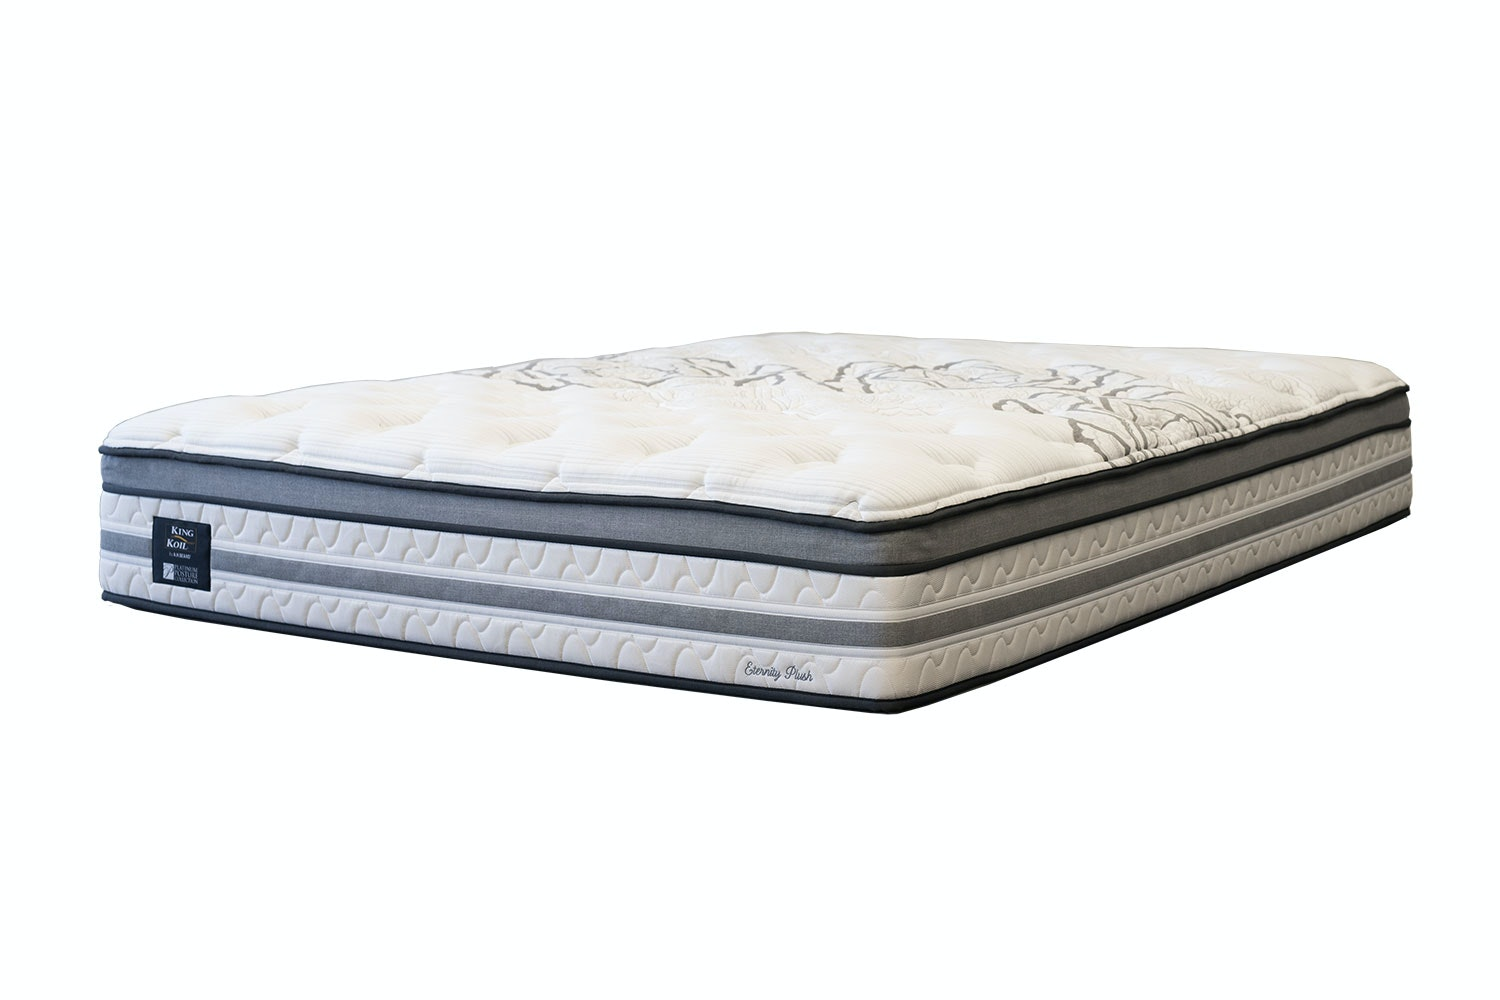 Eternity Plush Single Mattress by King Koil